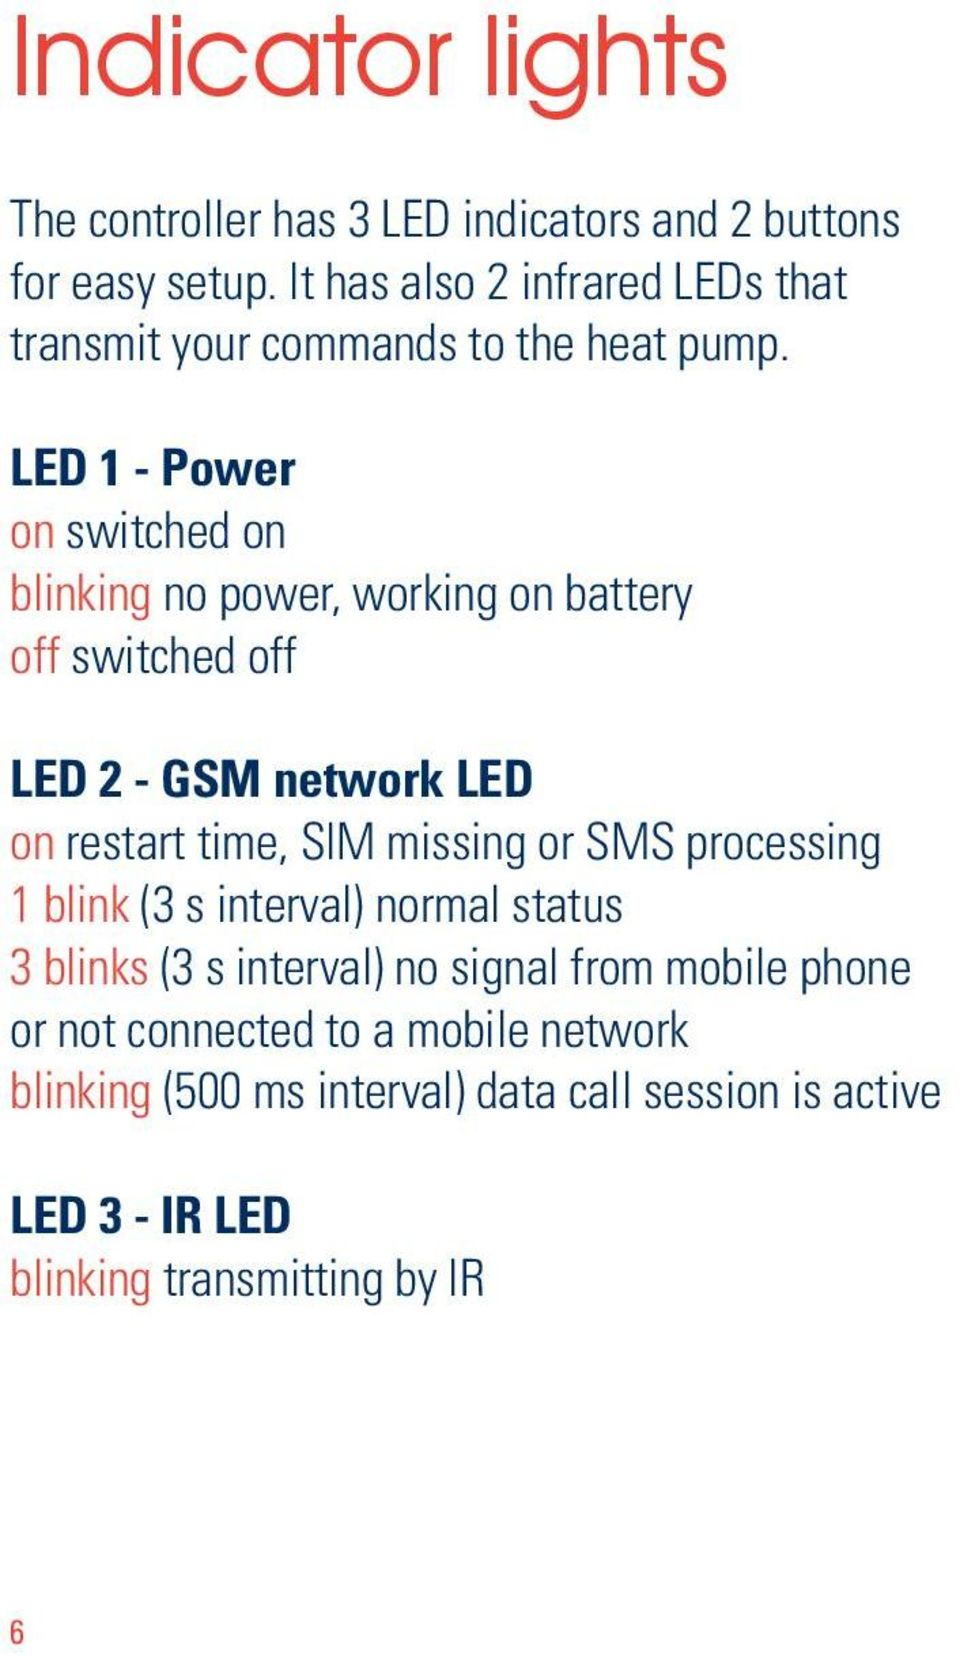 LED 1 - Power on switched on blinking no power, working on battery off switched off LED 2 - GSM network LED on restart time, SIM